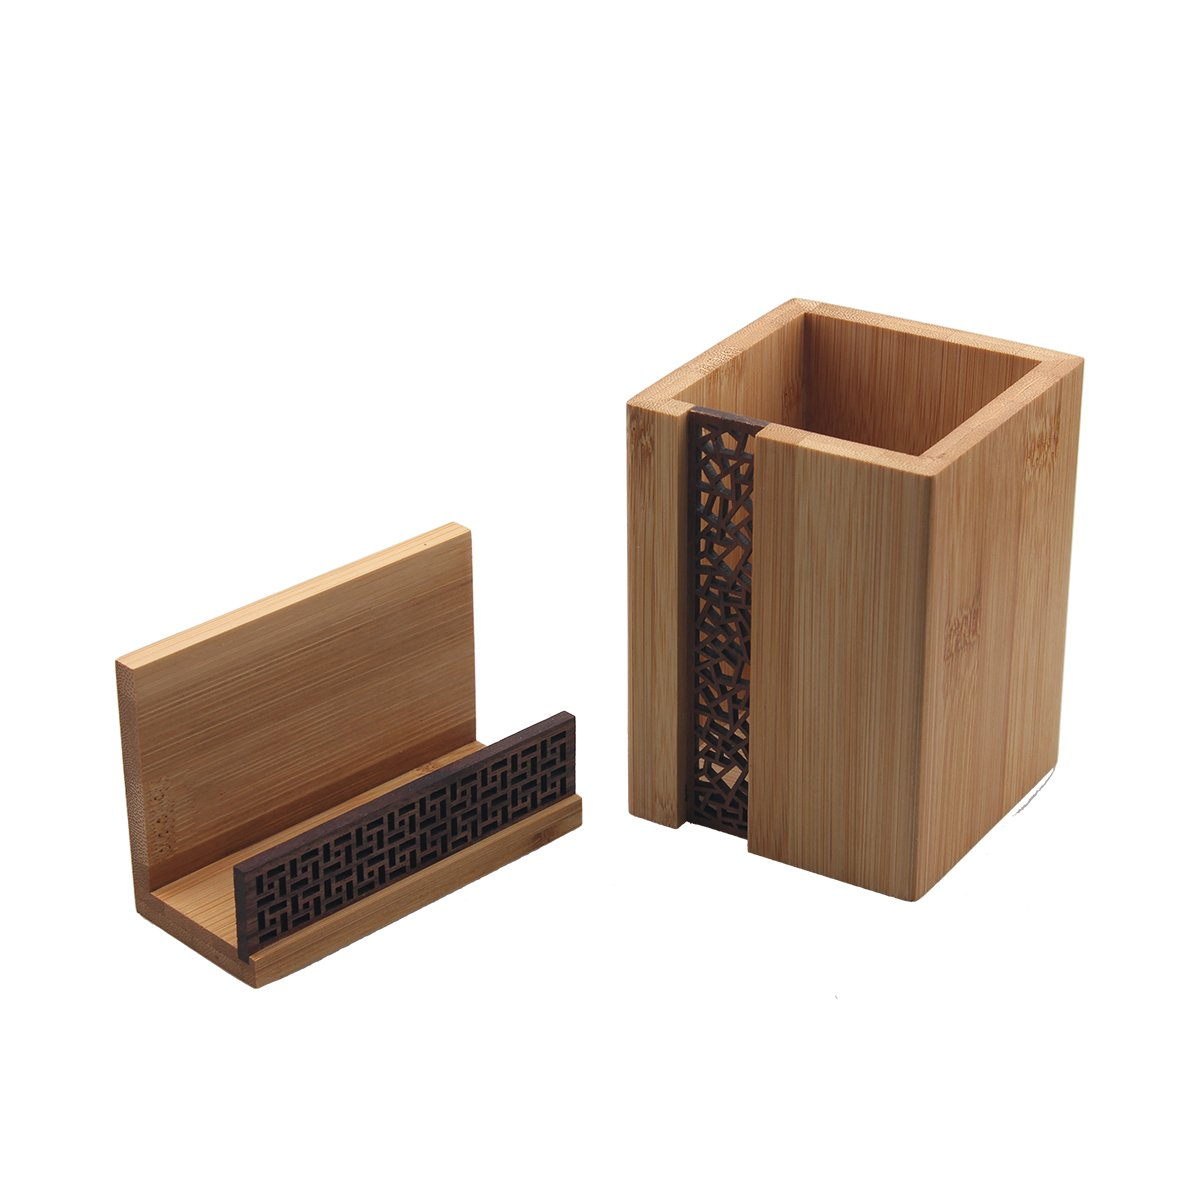 BangQiao Executive Bamboo Wooden Business Name Card Display Stand and Pencil Cup Holder for Desk,Home,and Office,Pack of 2